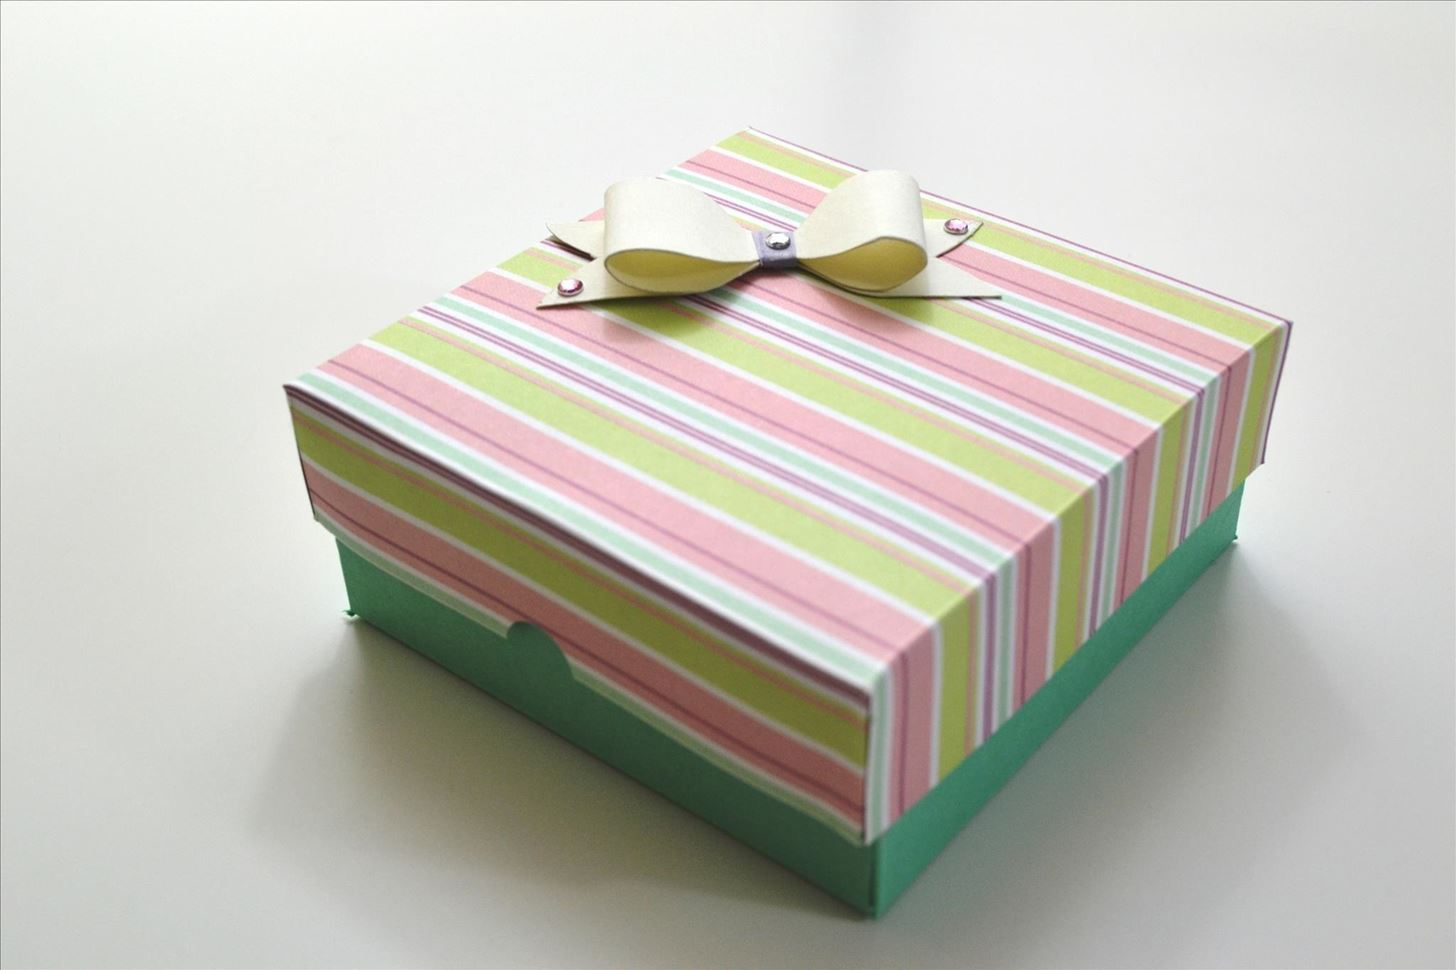 How to Make an Easy Paper Box - Valentine's Day Gift - DIY Crafts